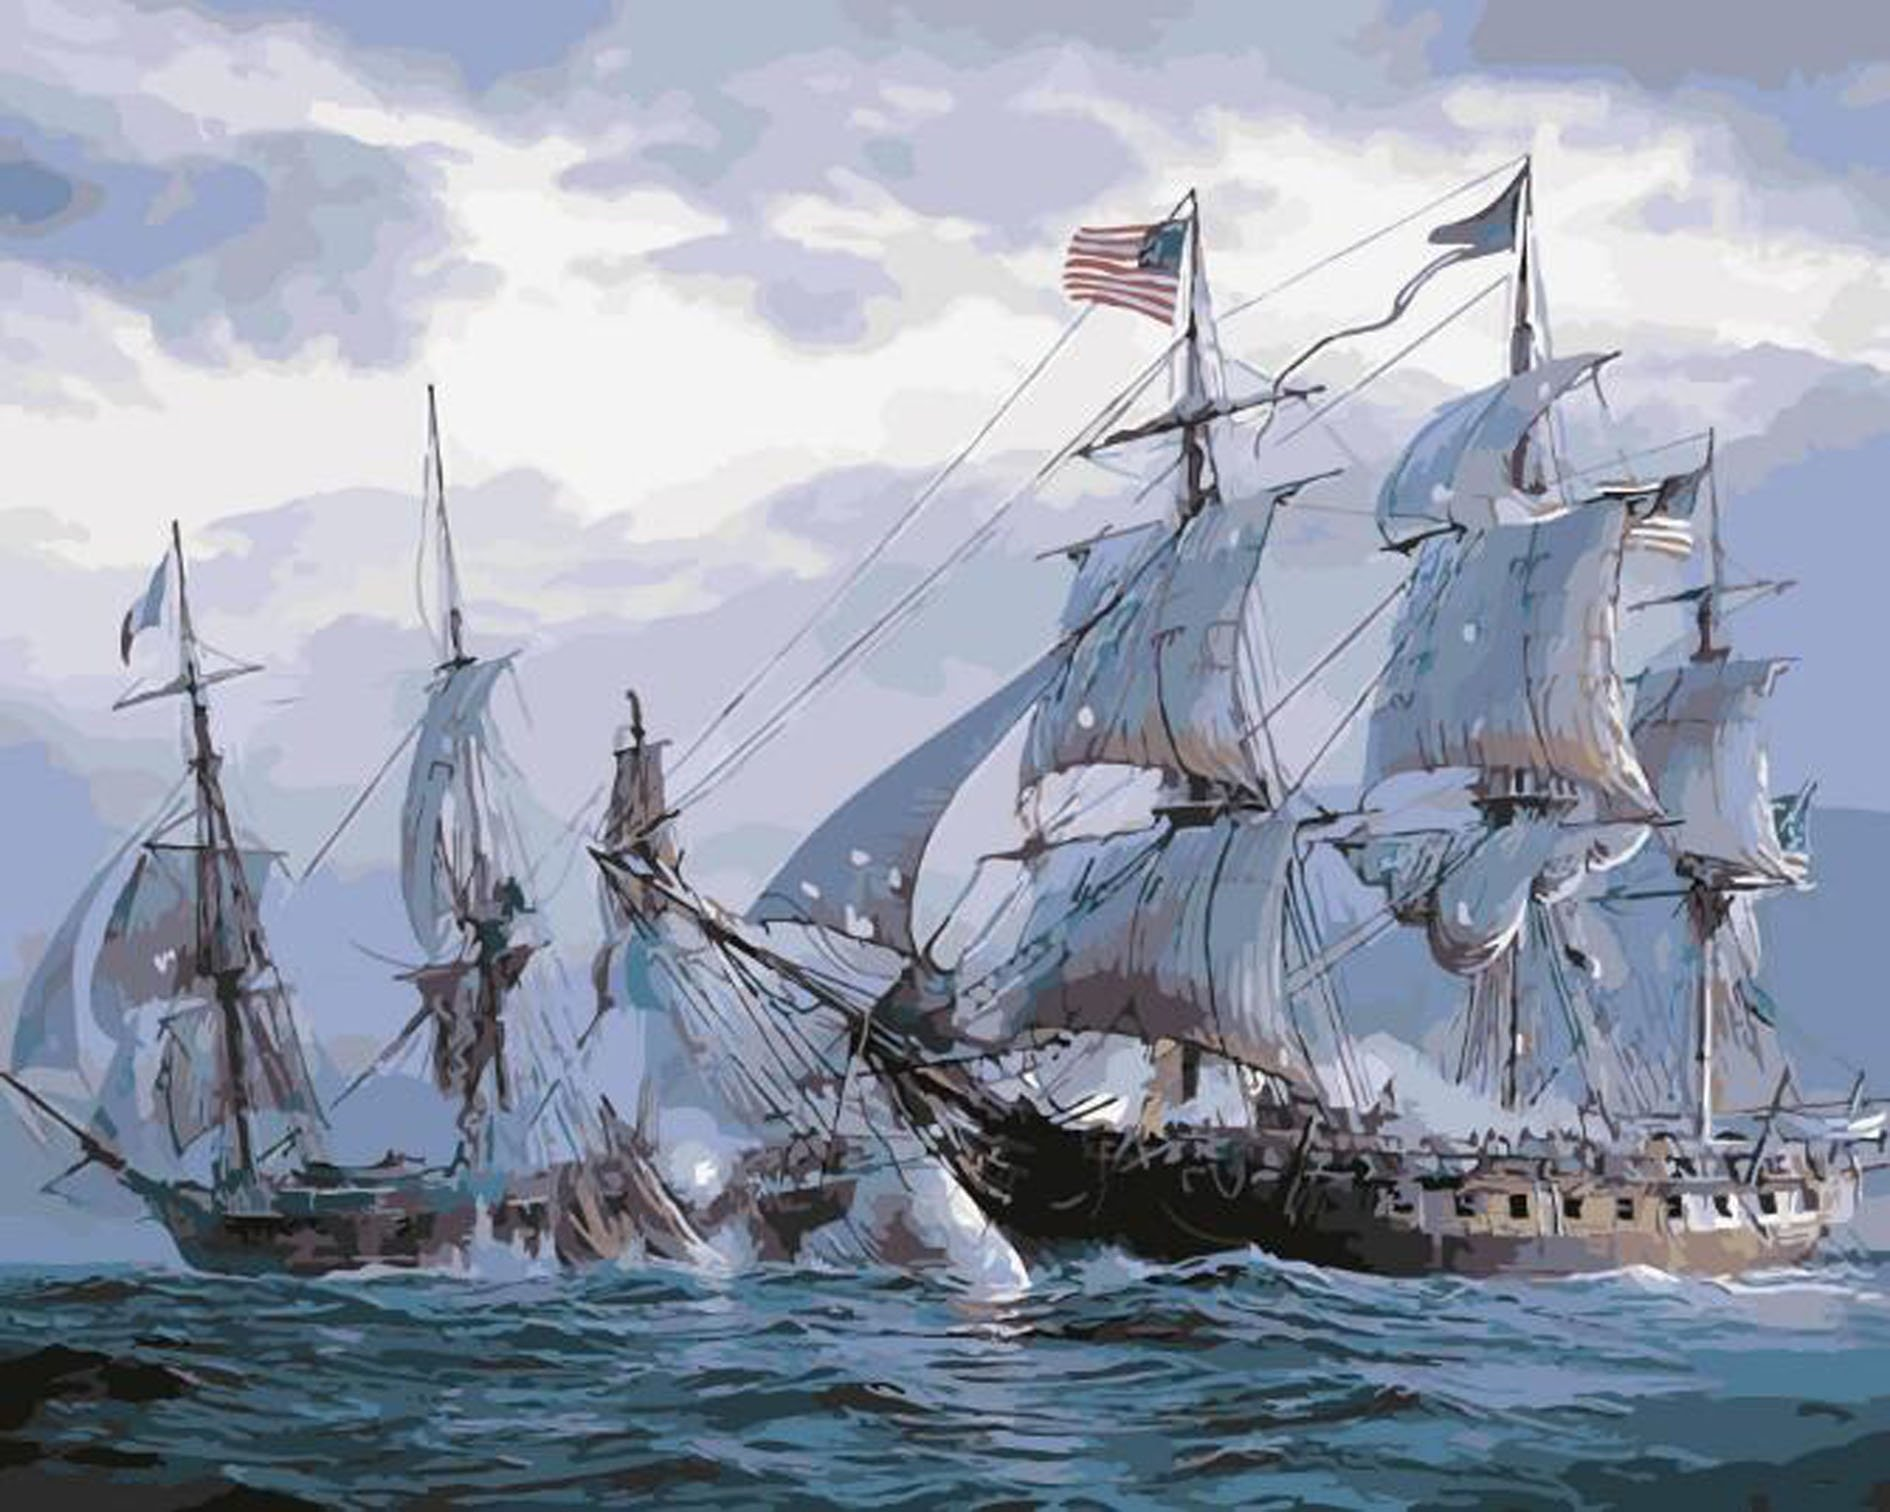 Ship Paint By Number Kits Pbn Kits Of Pirate Ships And